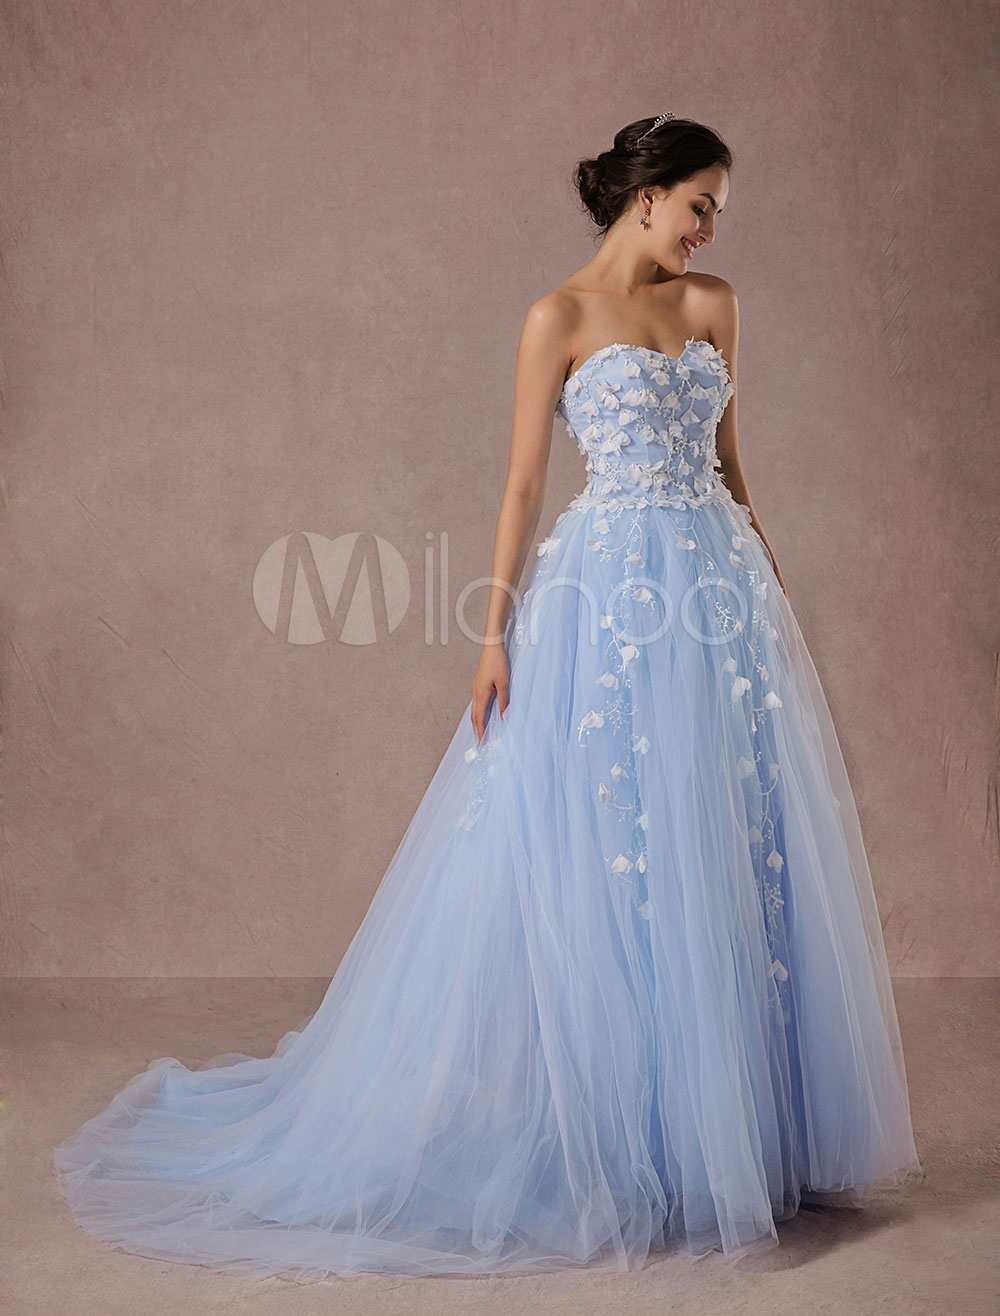 Blue Wedding Dress Lace Tulle Chapel Train Bridal Gown Sweetheart Strapless A-Line Luxury Princess Pageant Dress photo